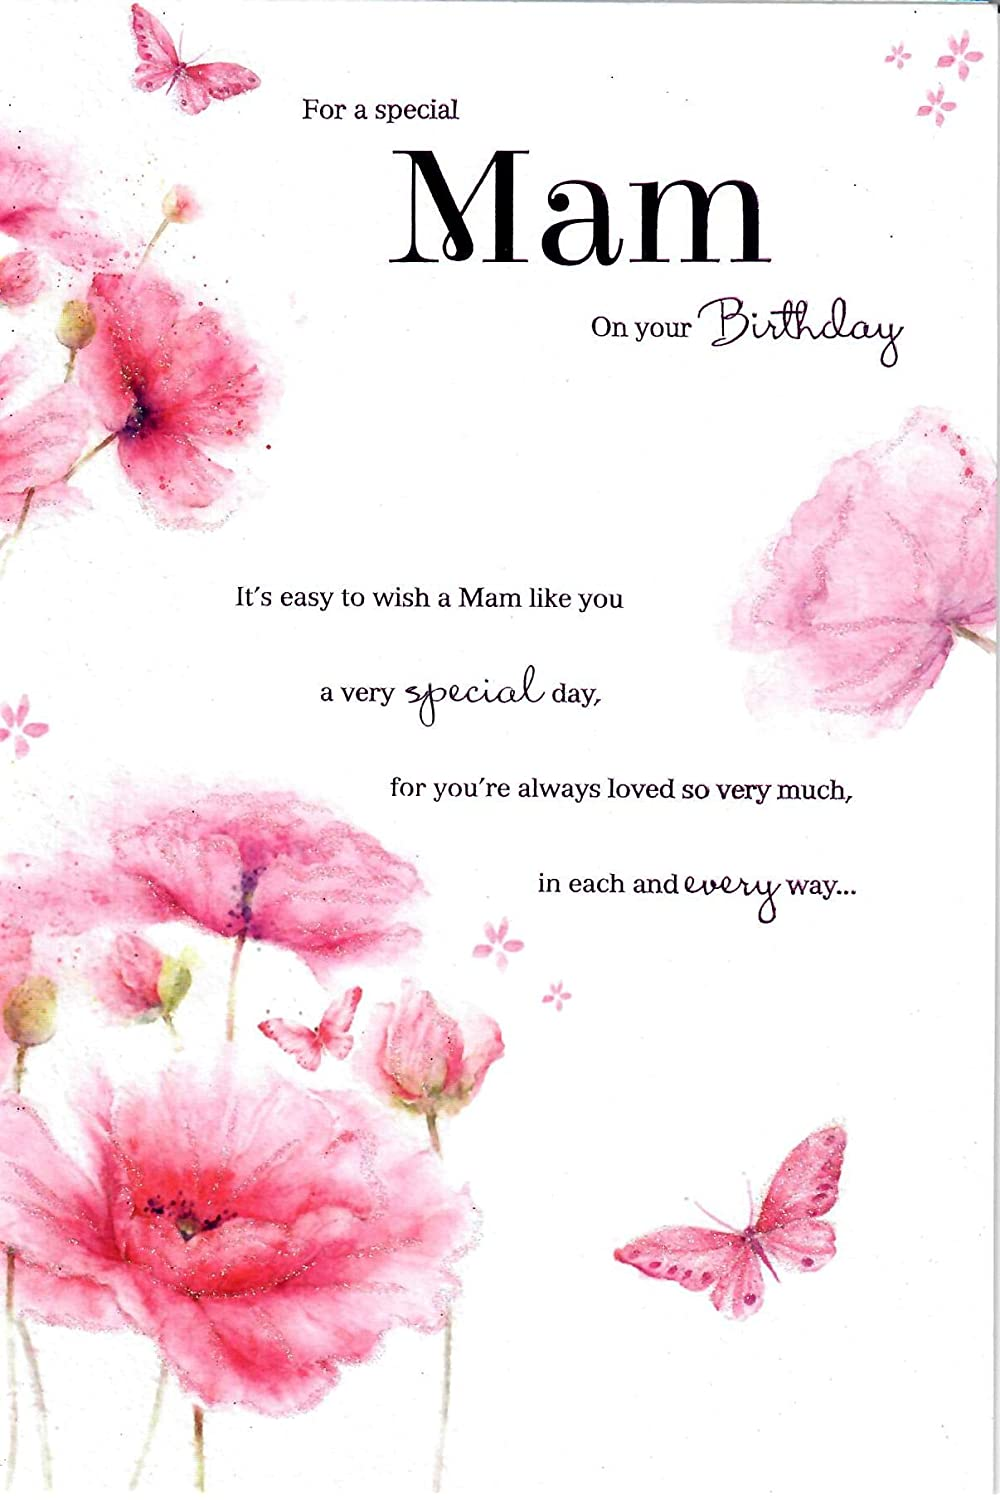 ICG Mam Birthday Card Flowers And Butterflies